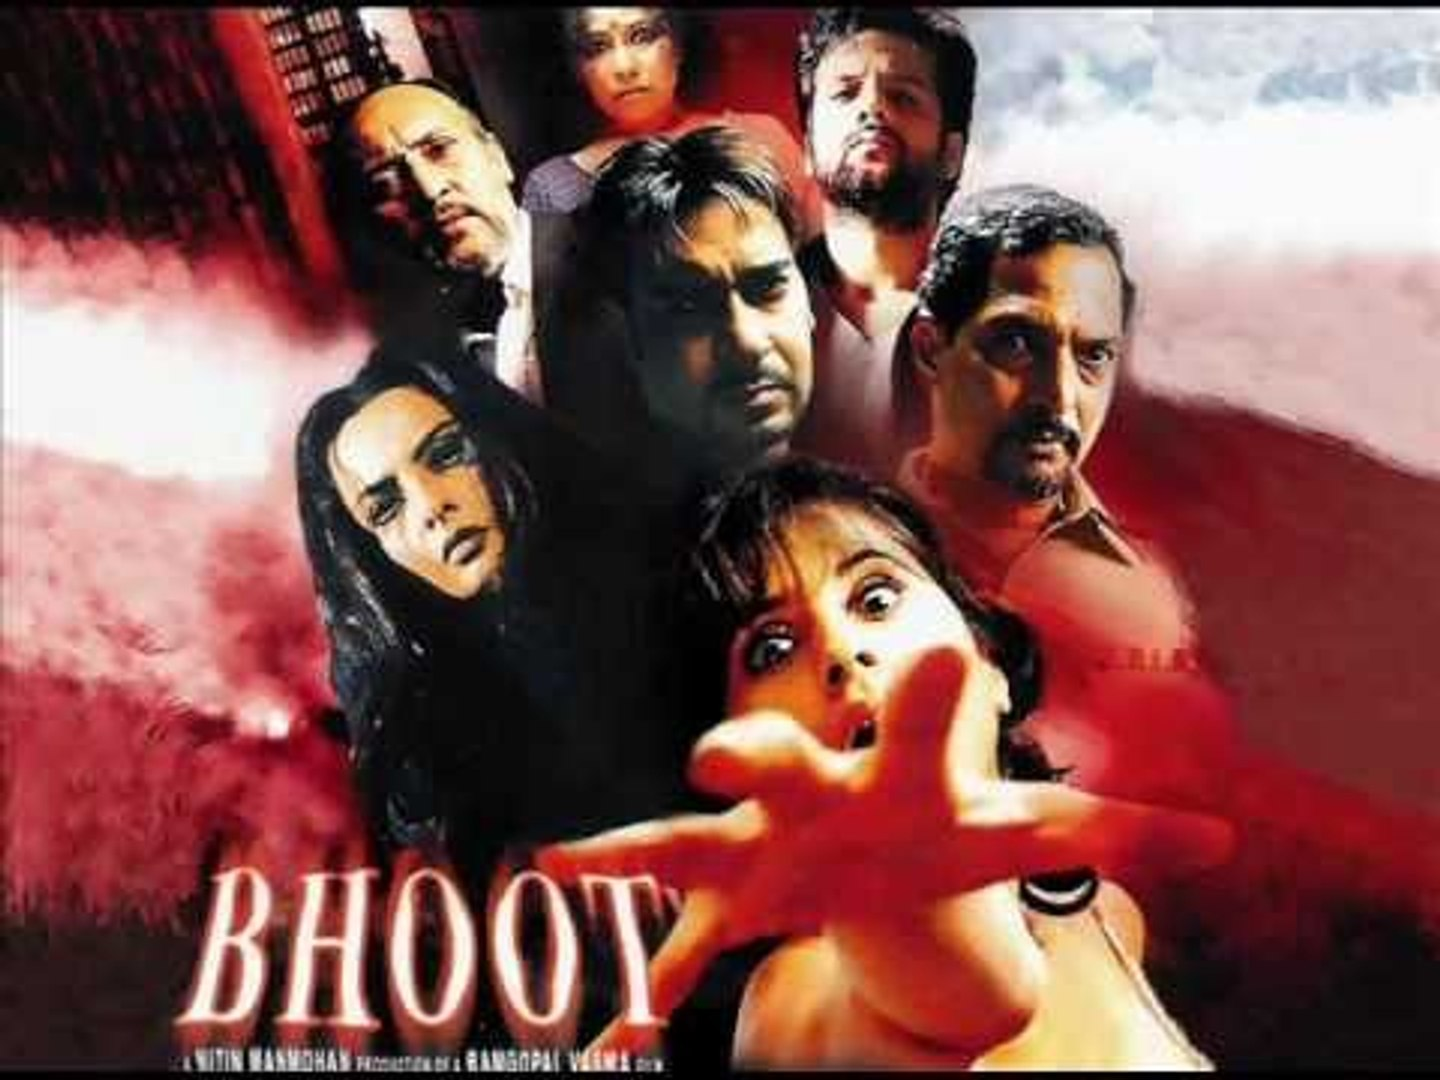 Bhoot (2003)(Part1/2) Hindi HD Movies - Ajay Devgan - Urmila Matondkar -  Best Horror Movie -Bollywood Classic Collection